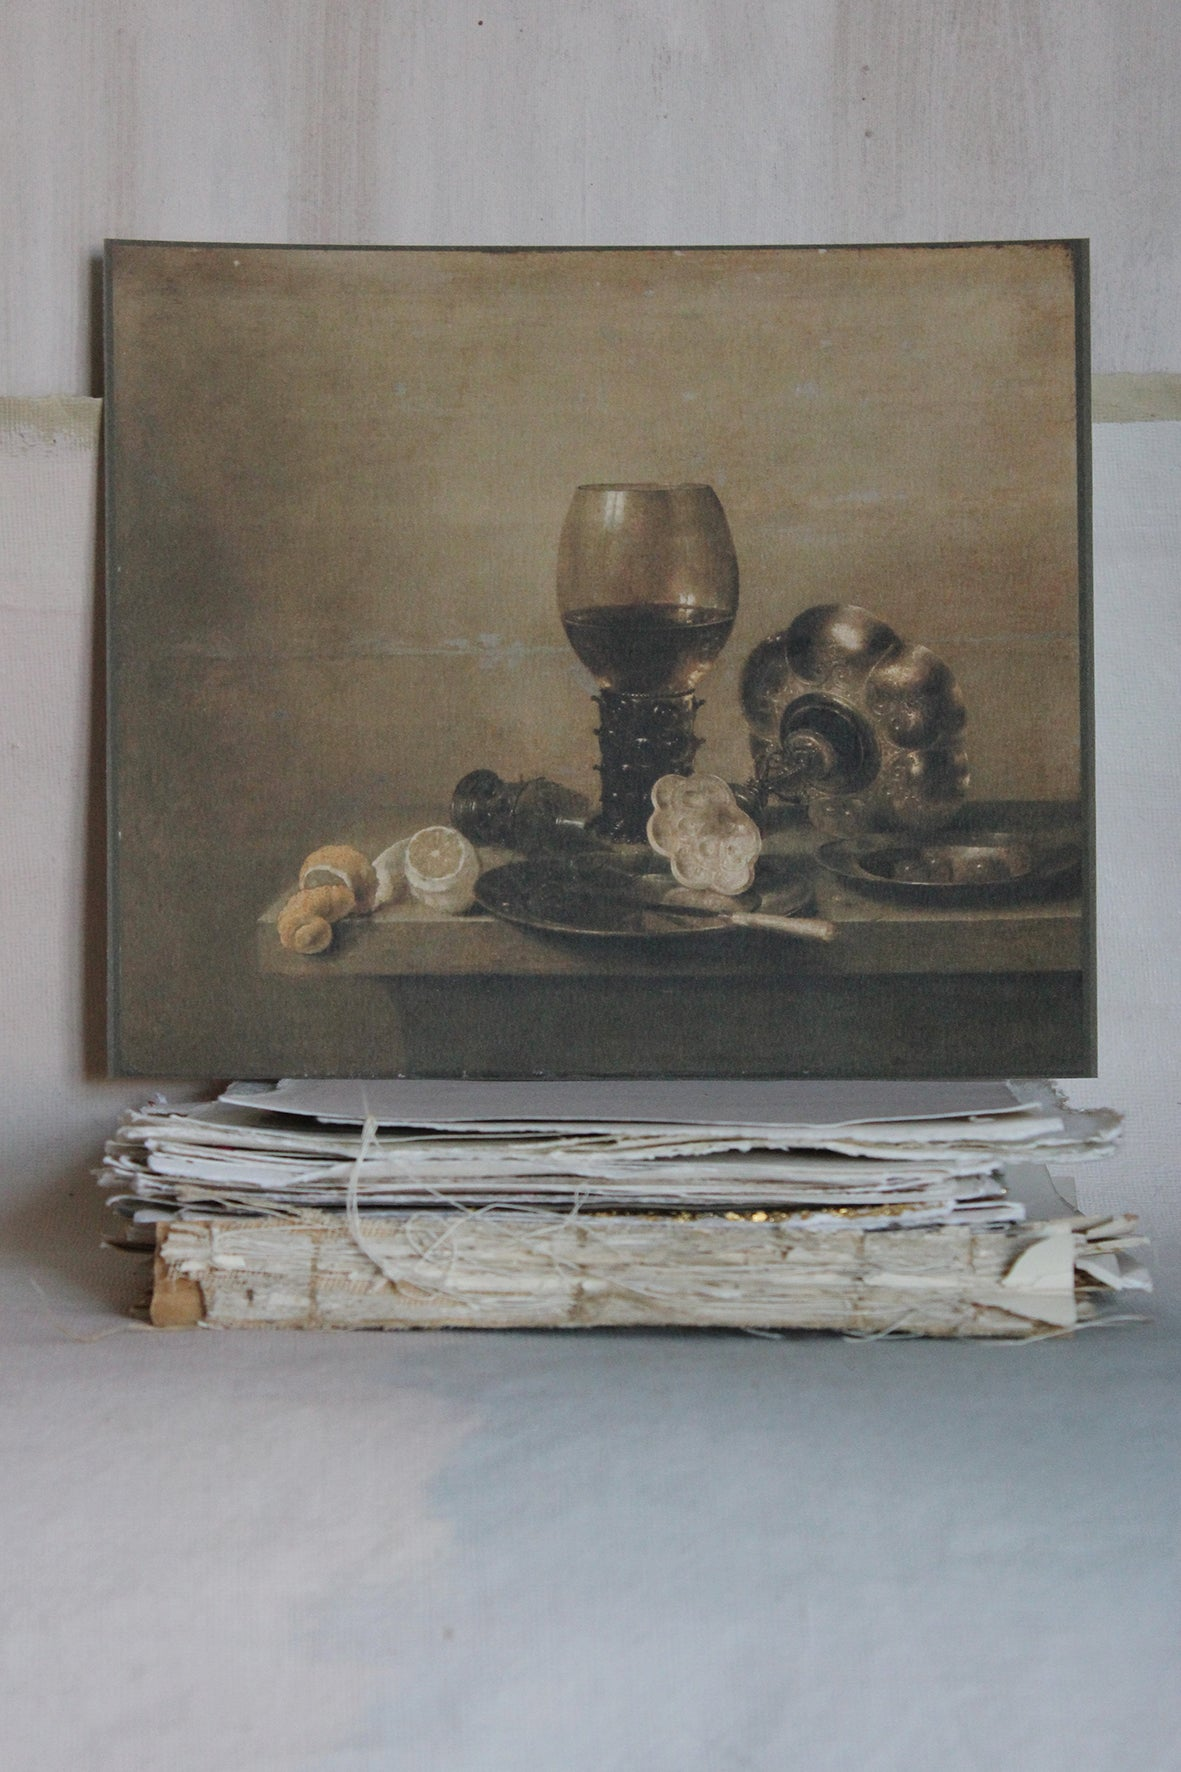 'STILL LIFE' CARD - WARM PEWTER